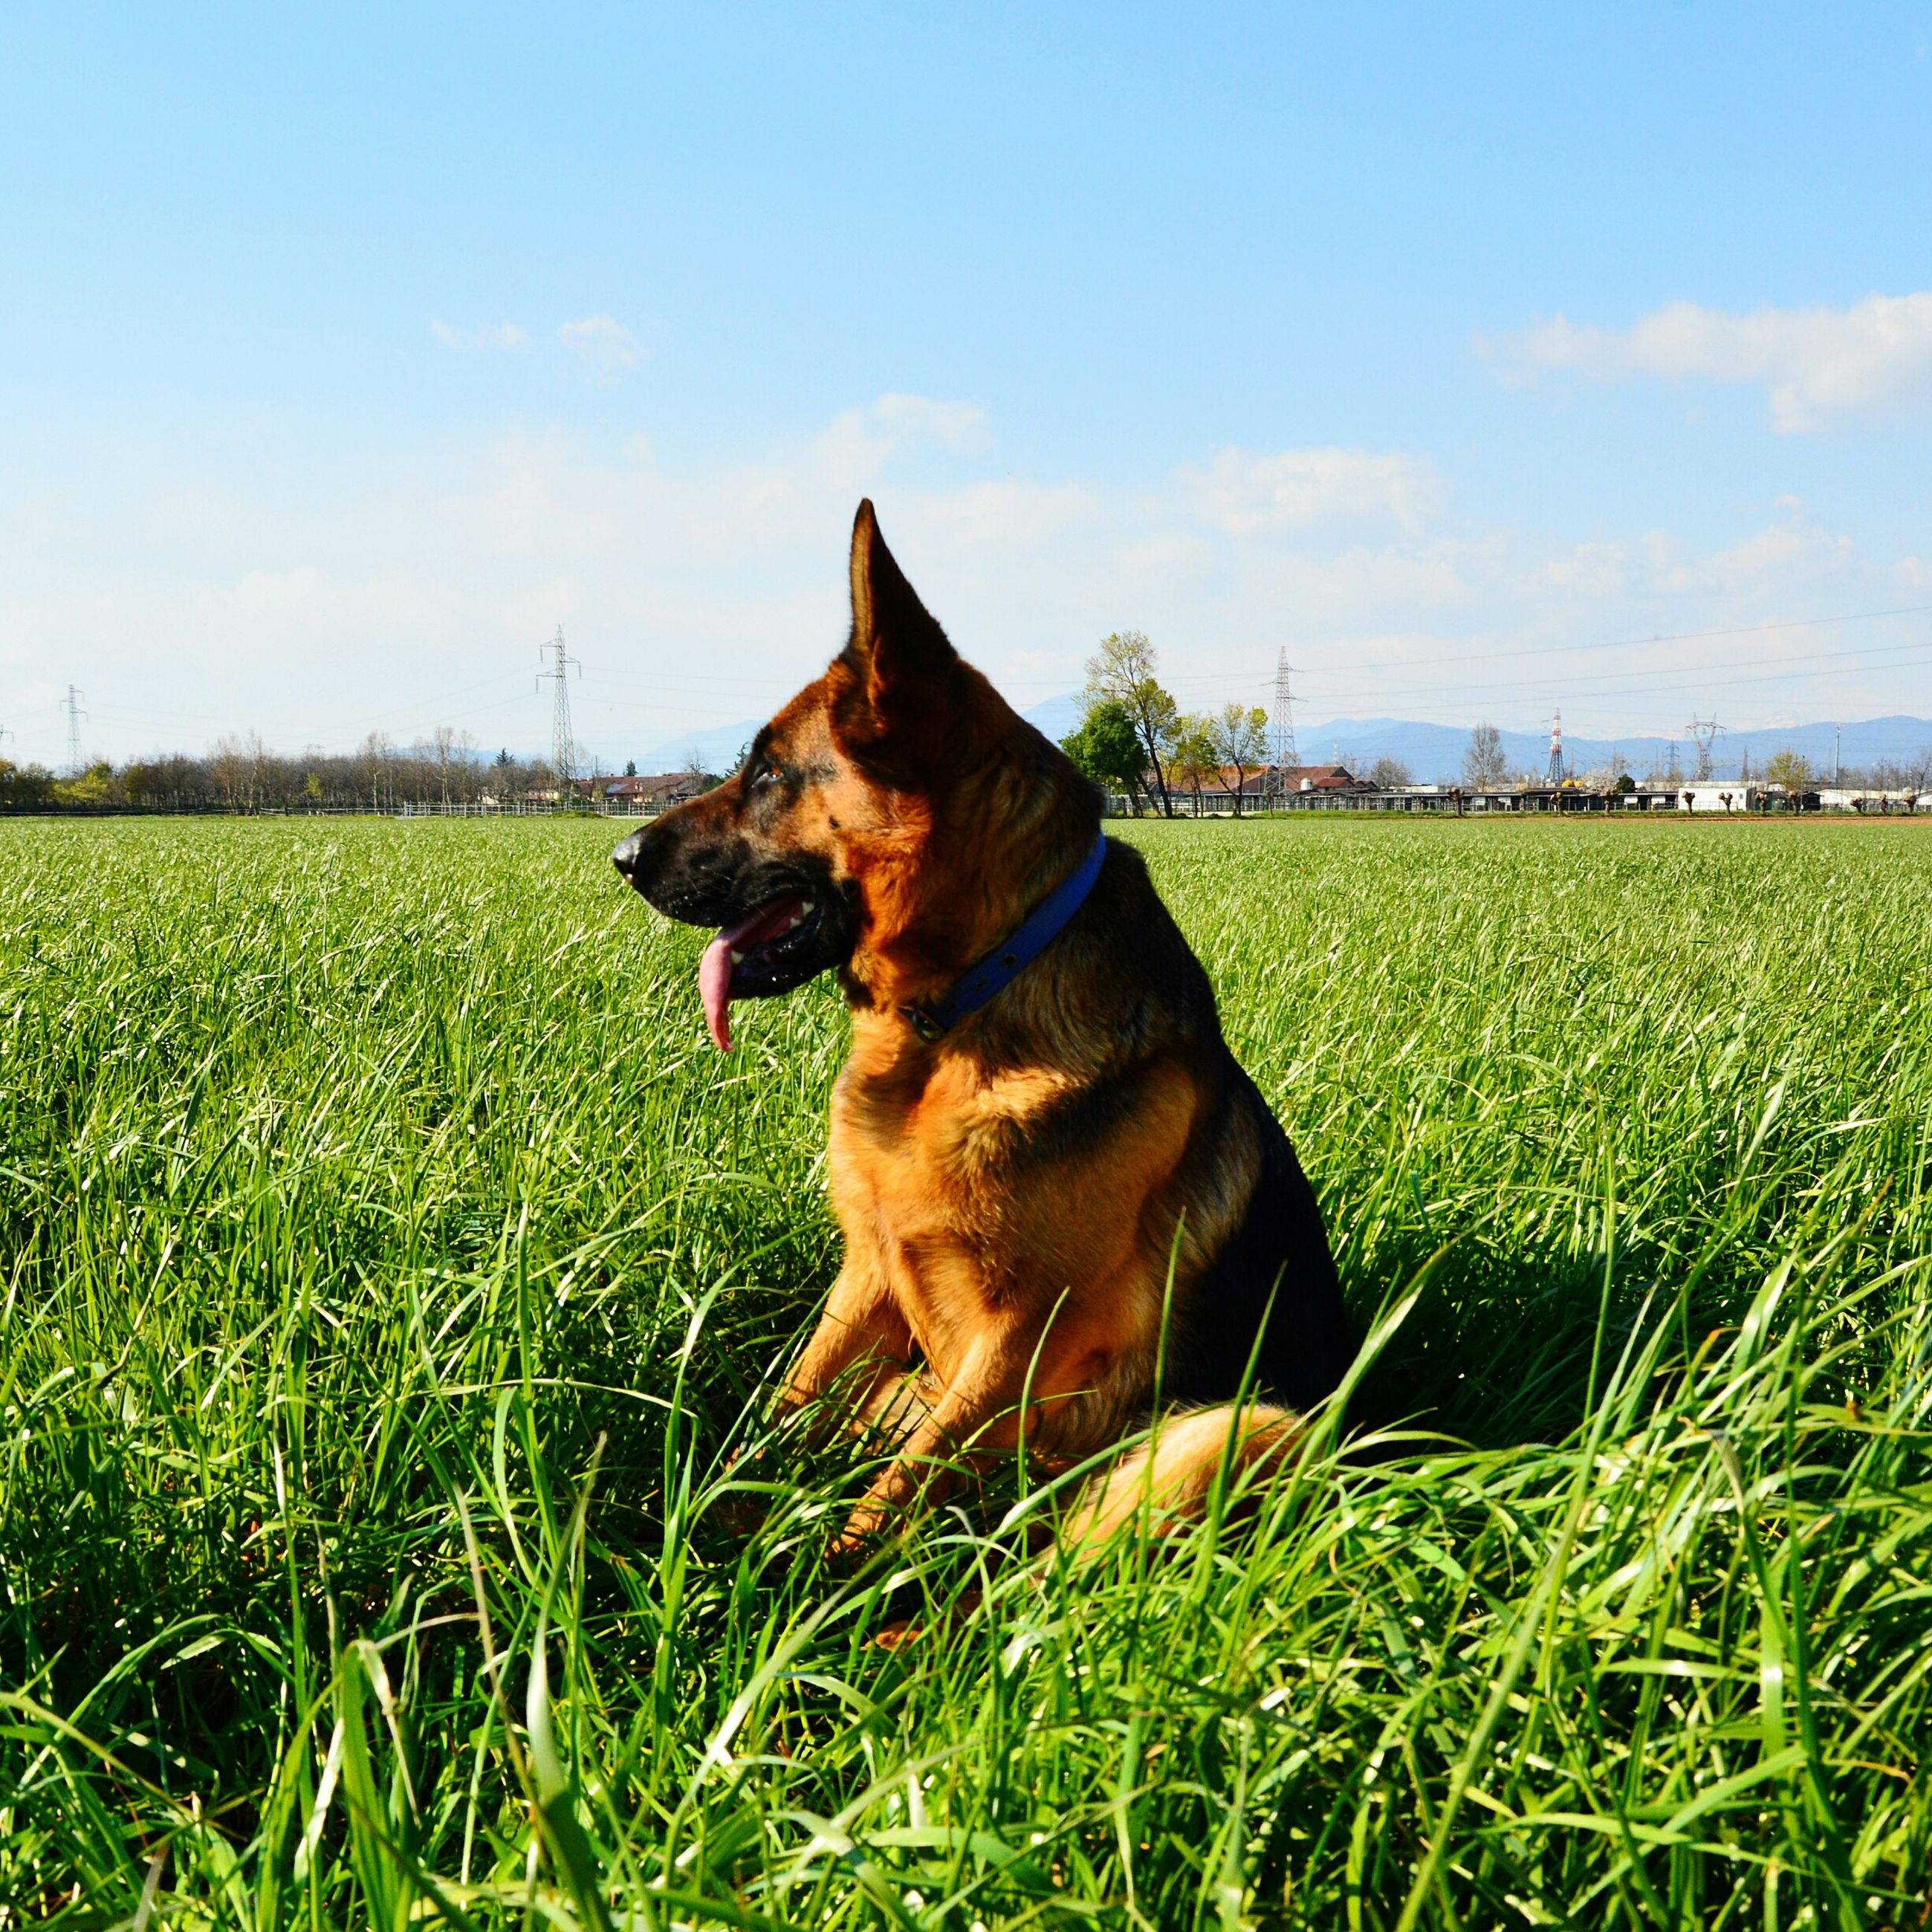 domestic animals, grass, pets, animal themes, mammal, one animal, field, grassy, dog, green color, sky, landscape, growth, nature, relaxation, sunlight, domestic cat, grassland, day, no people